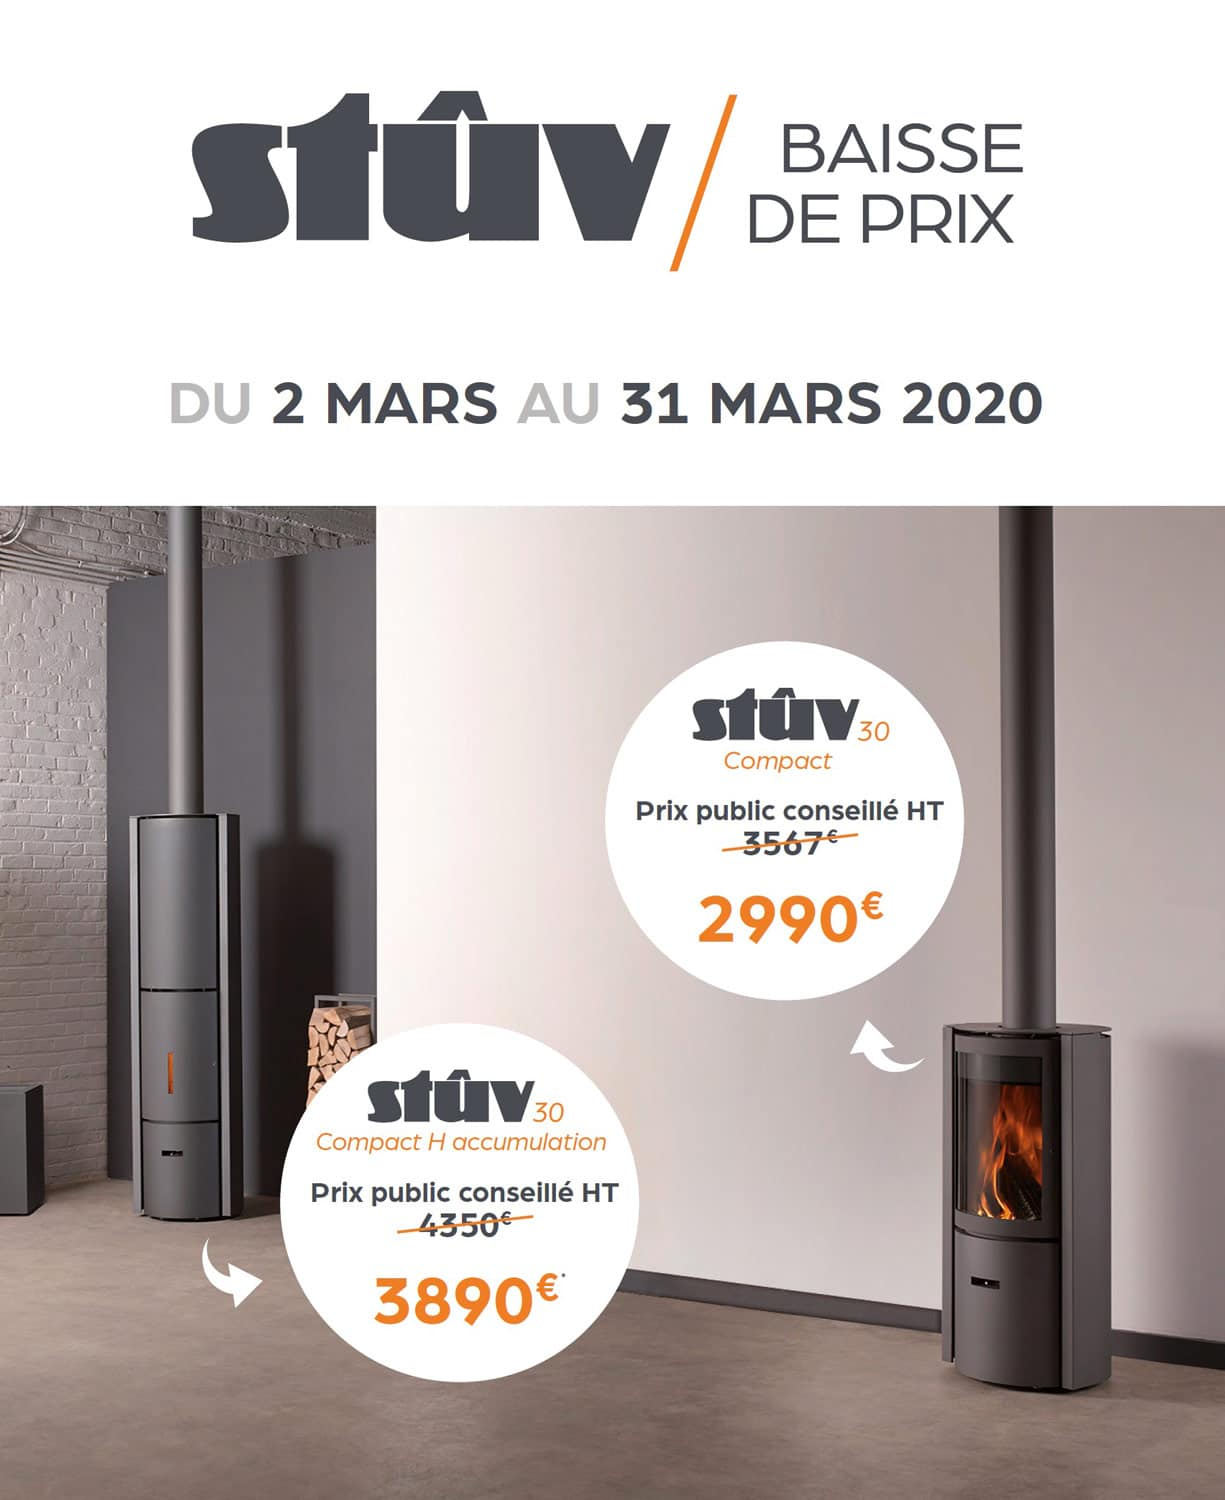 promotions stuv printemps 2020